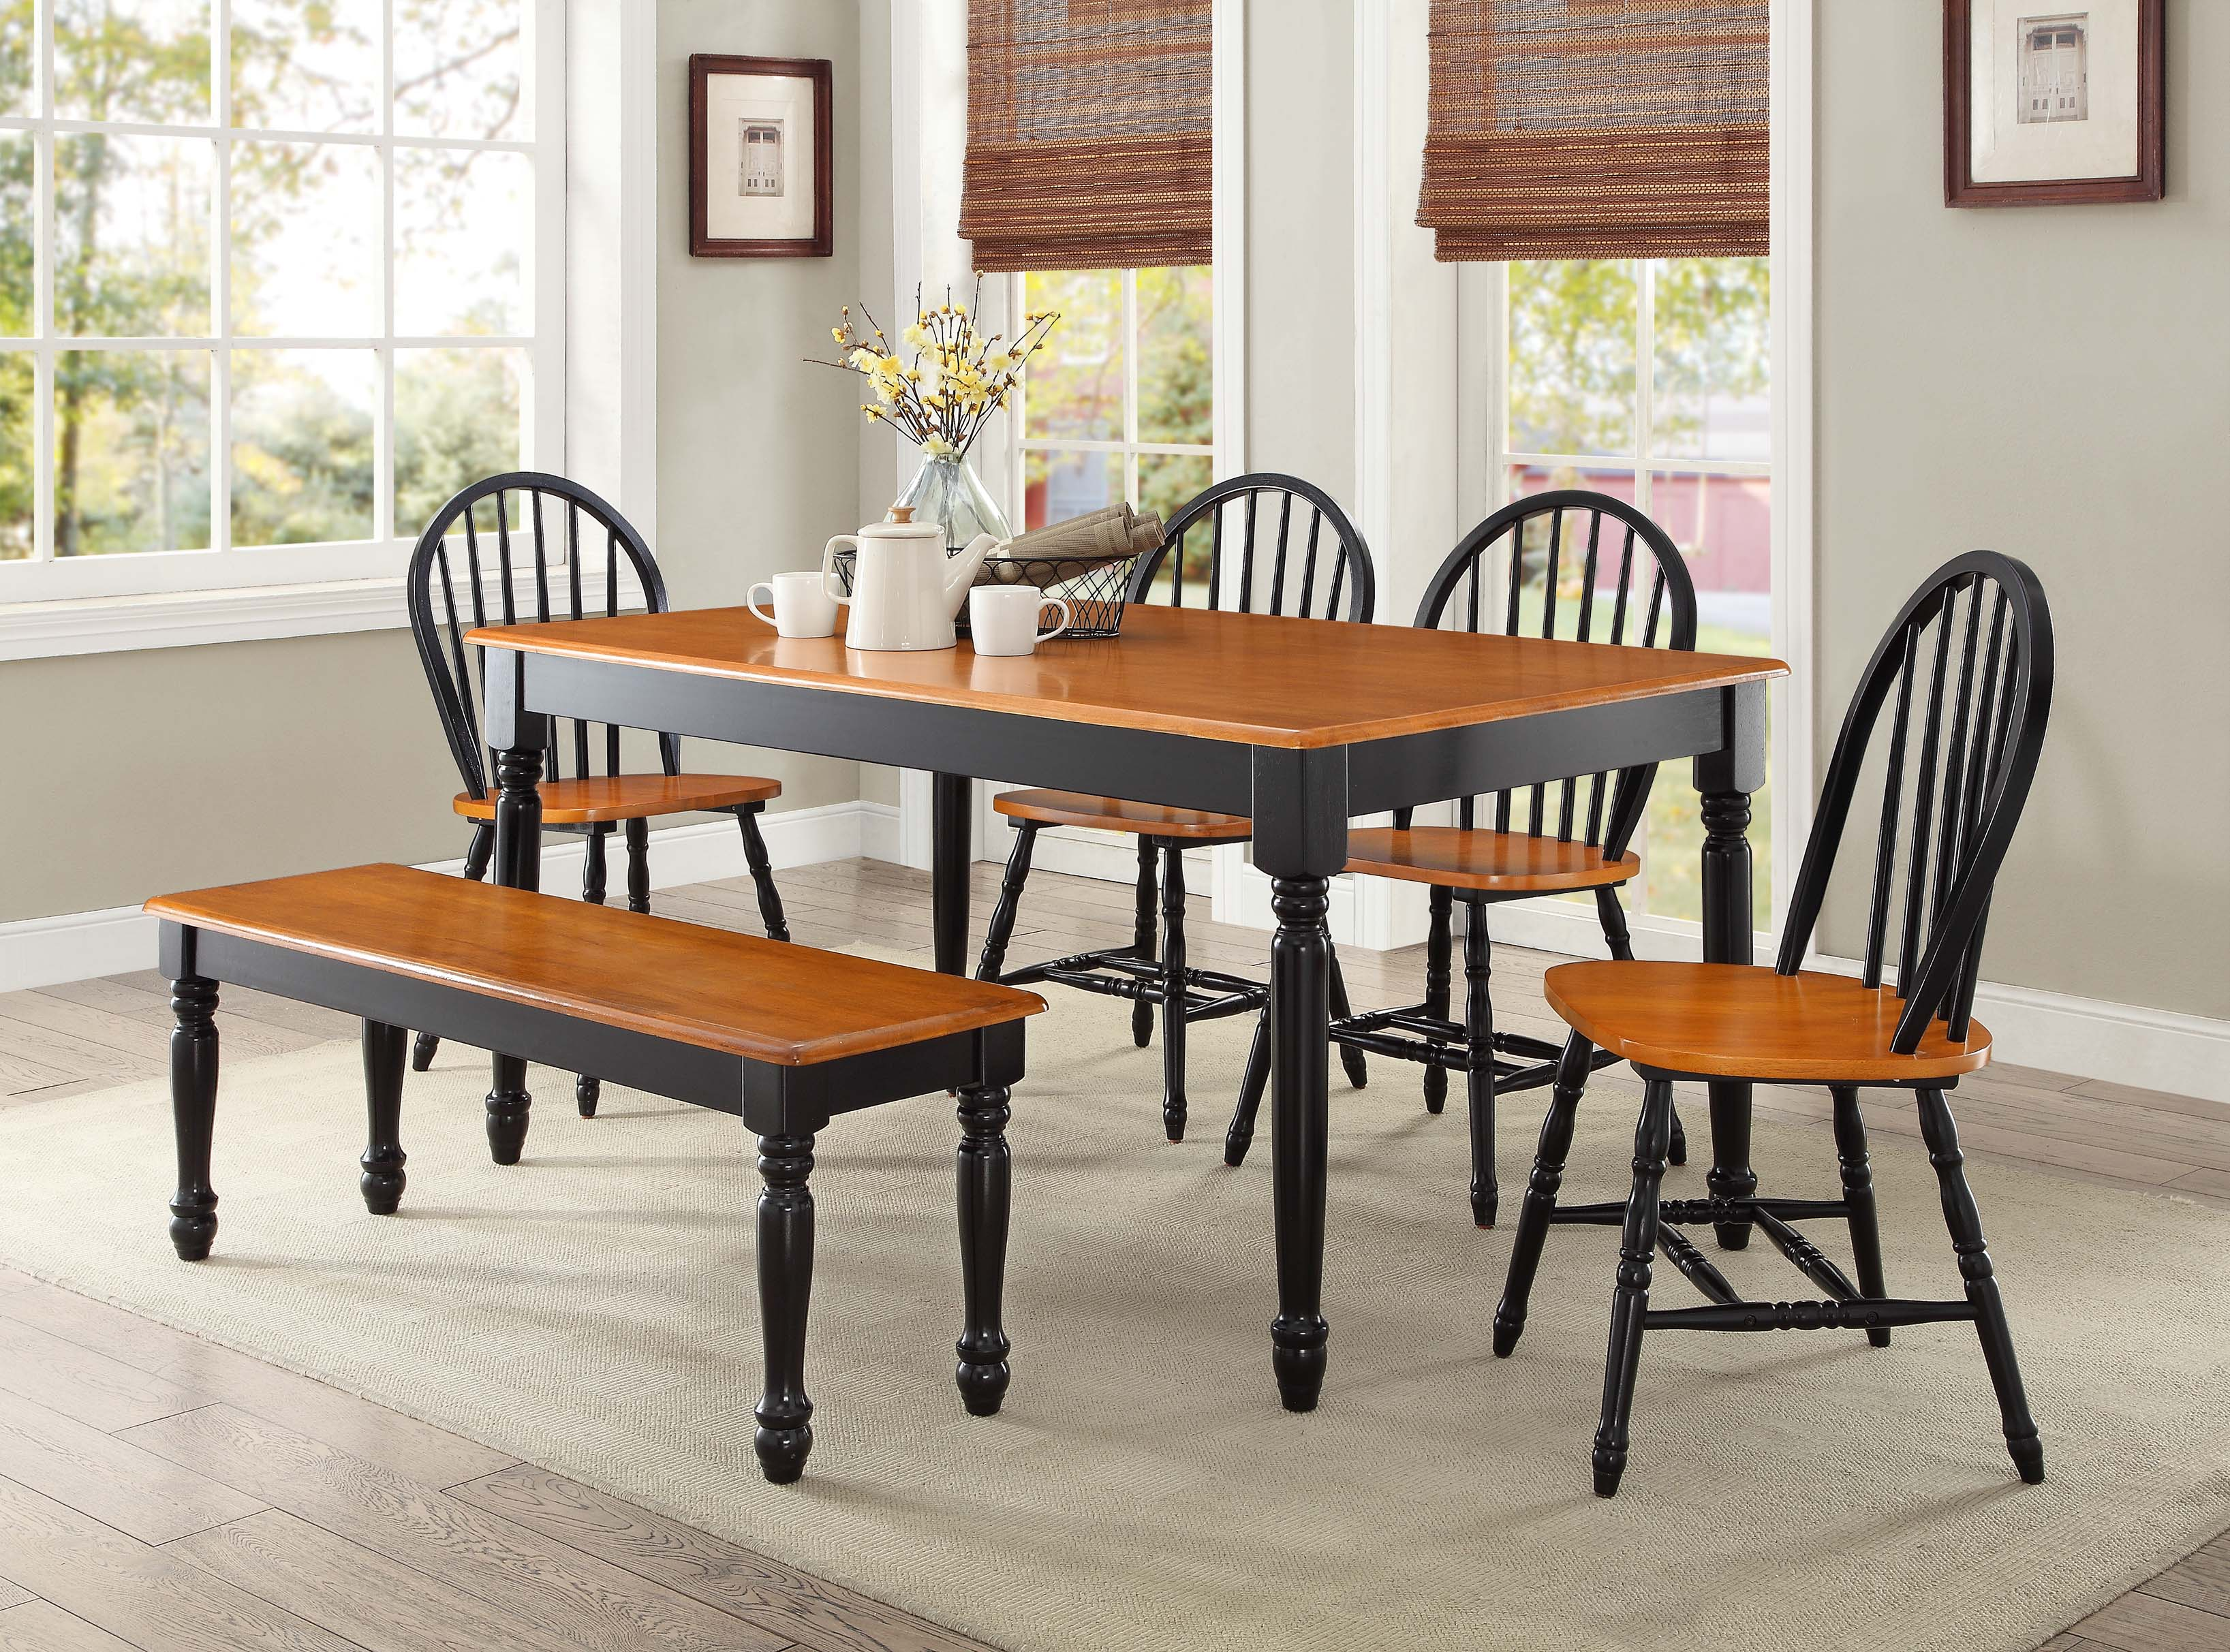 better homes and gardens autumn lane farmhouse 6-piece dining set